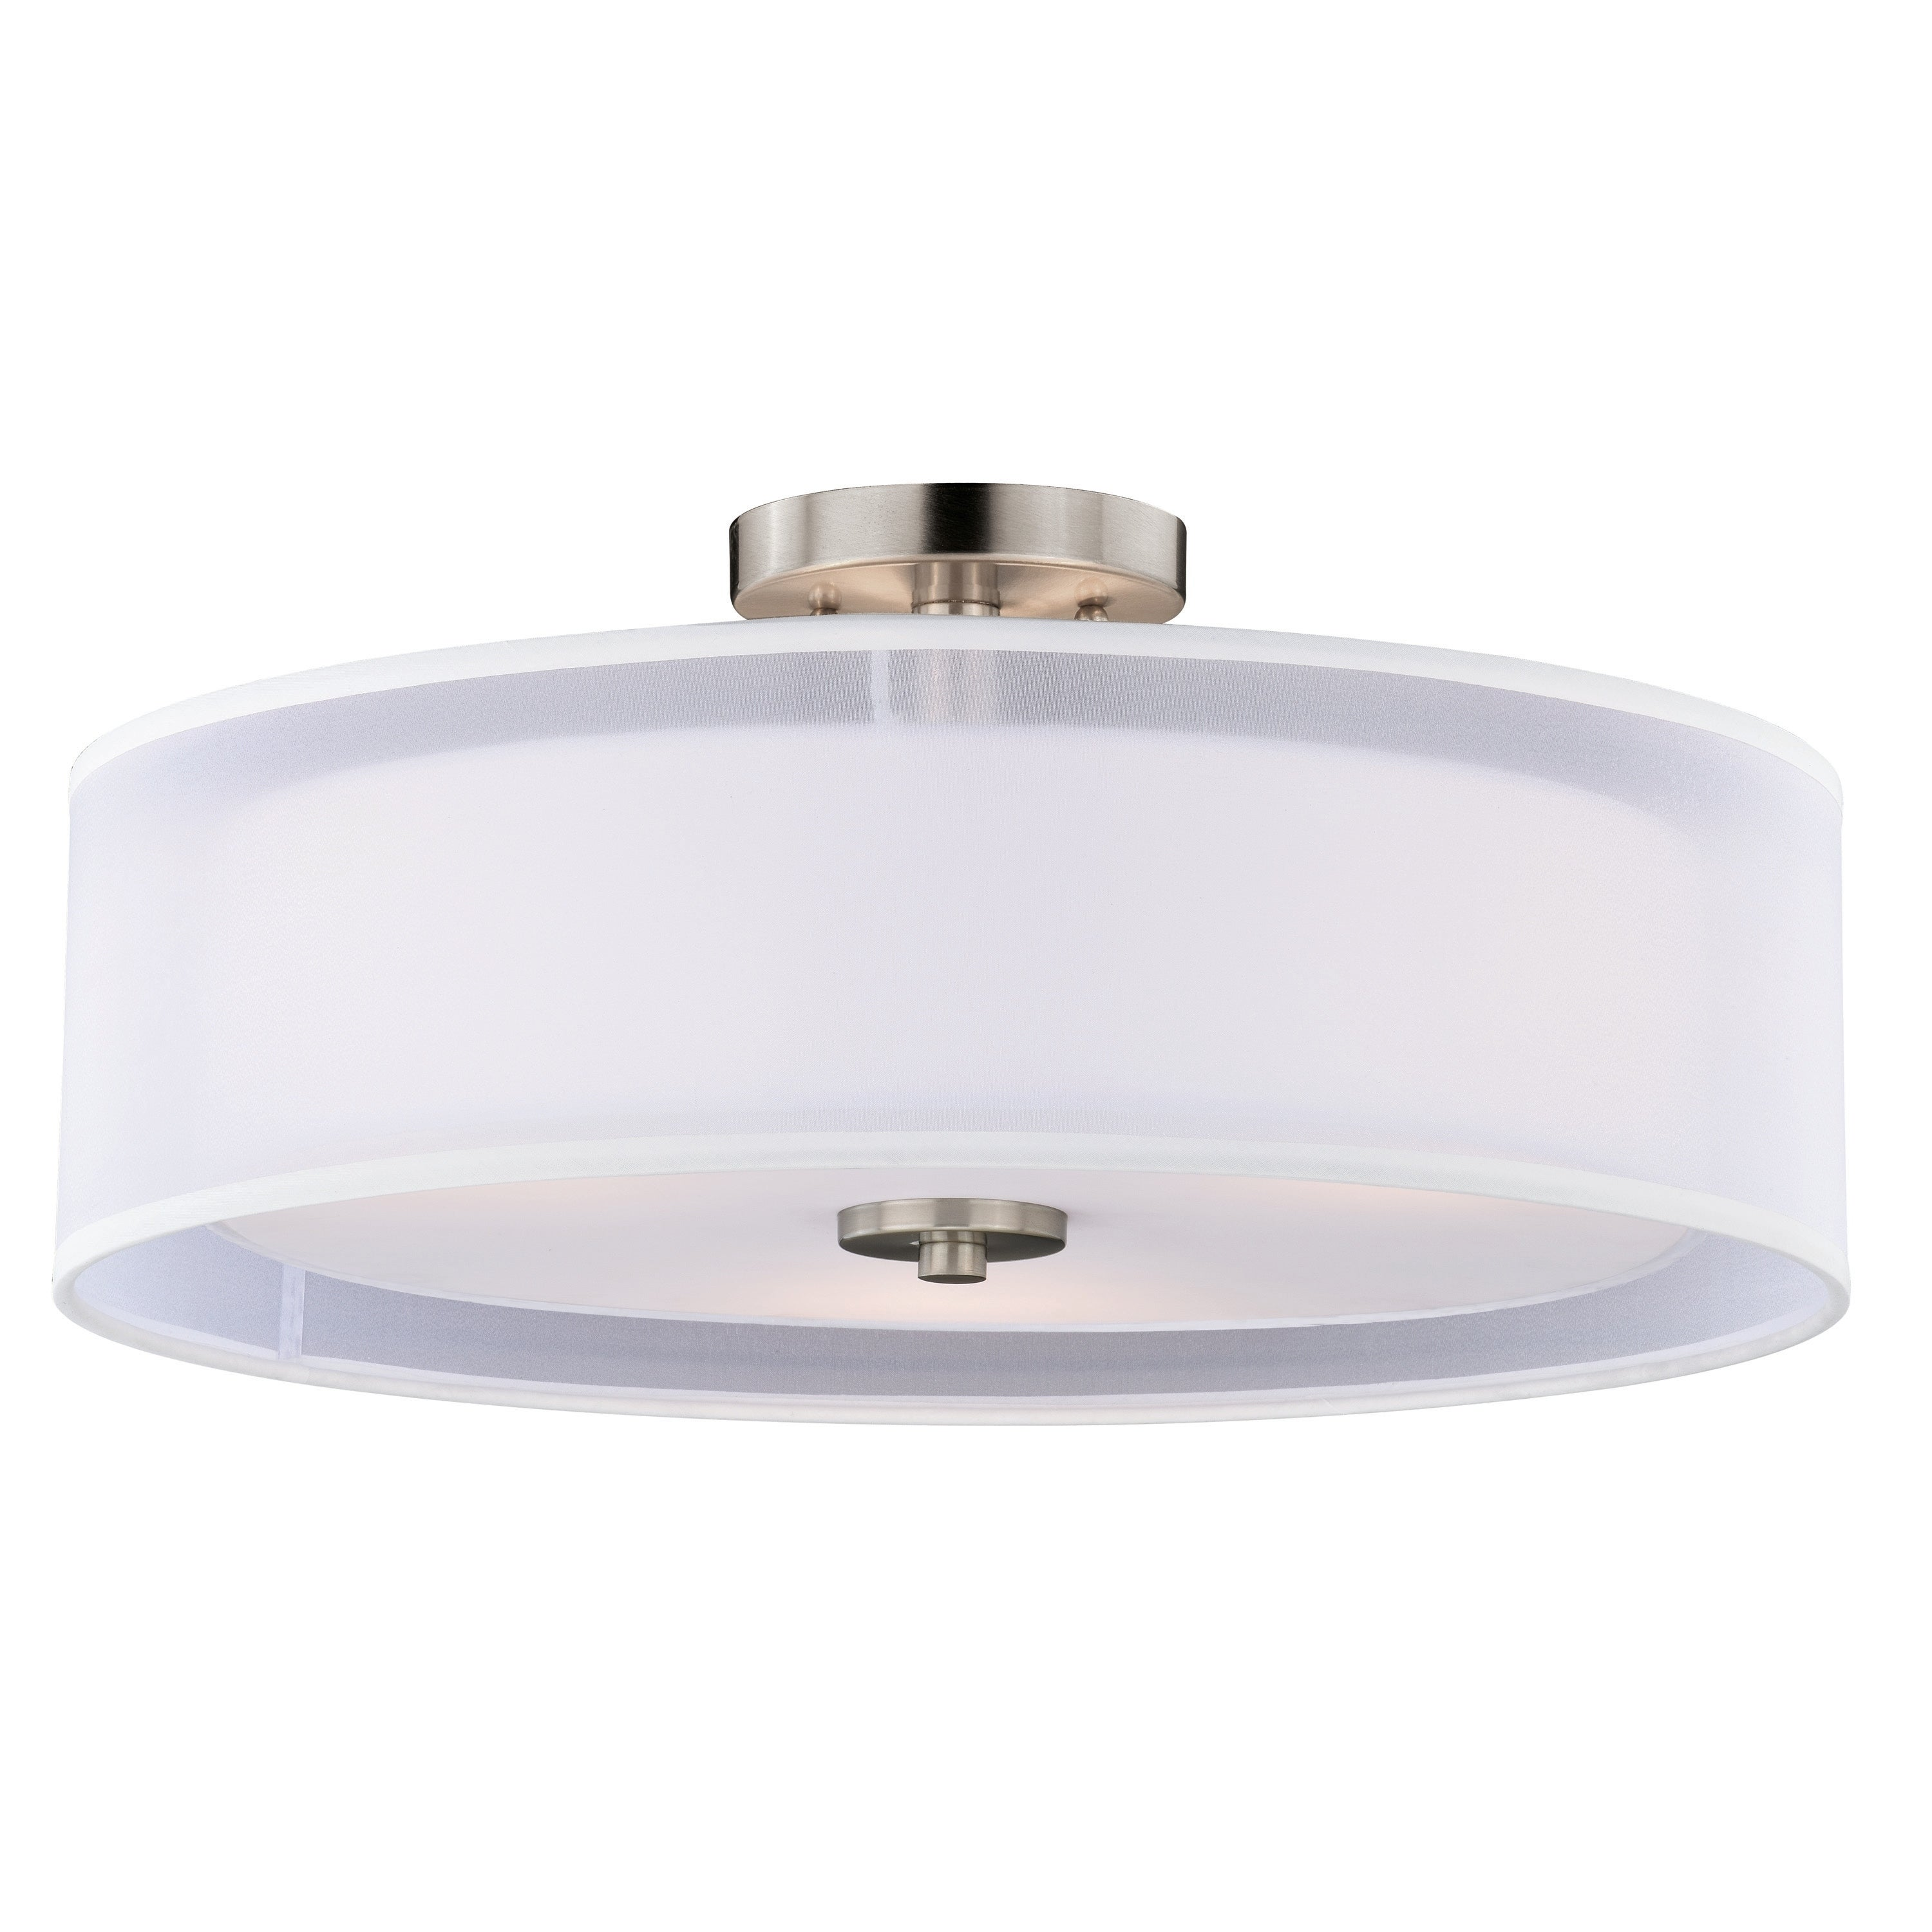 Image of: Shop Black Friday Deals On Nuage 18 In W Satin Nickel Mid Century Modern Drum Semi Flush Mount Ceiling Light White Fabric 18 In W X 8 In H X 18 In D Overstock 20985759